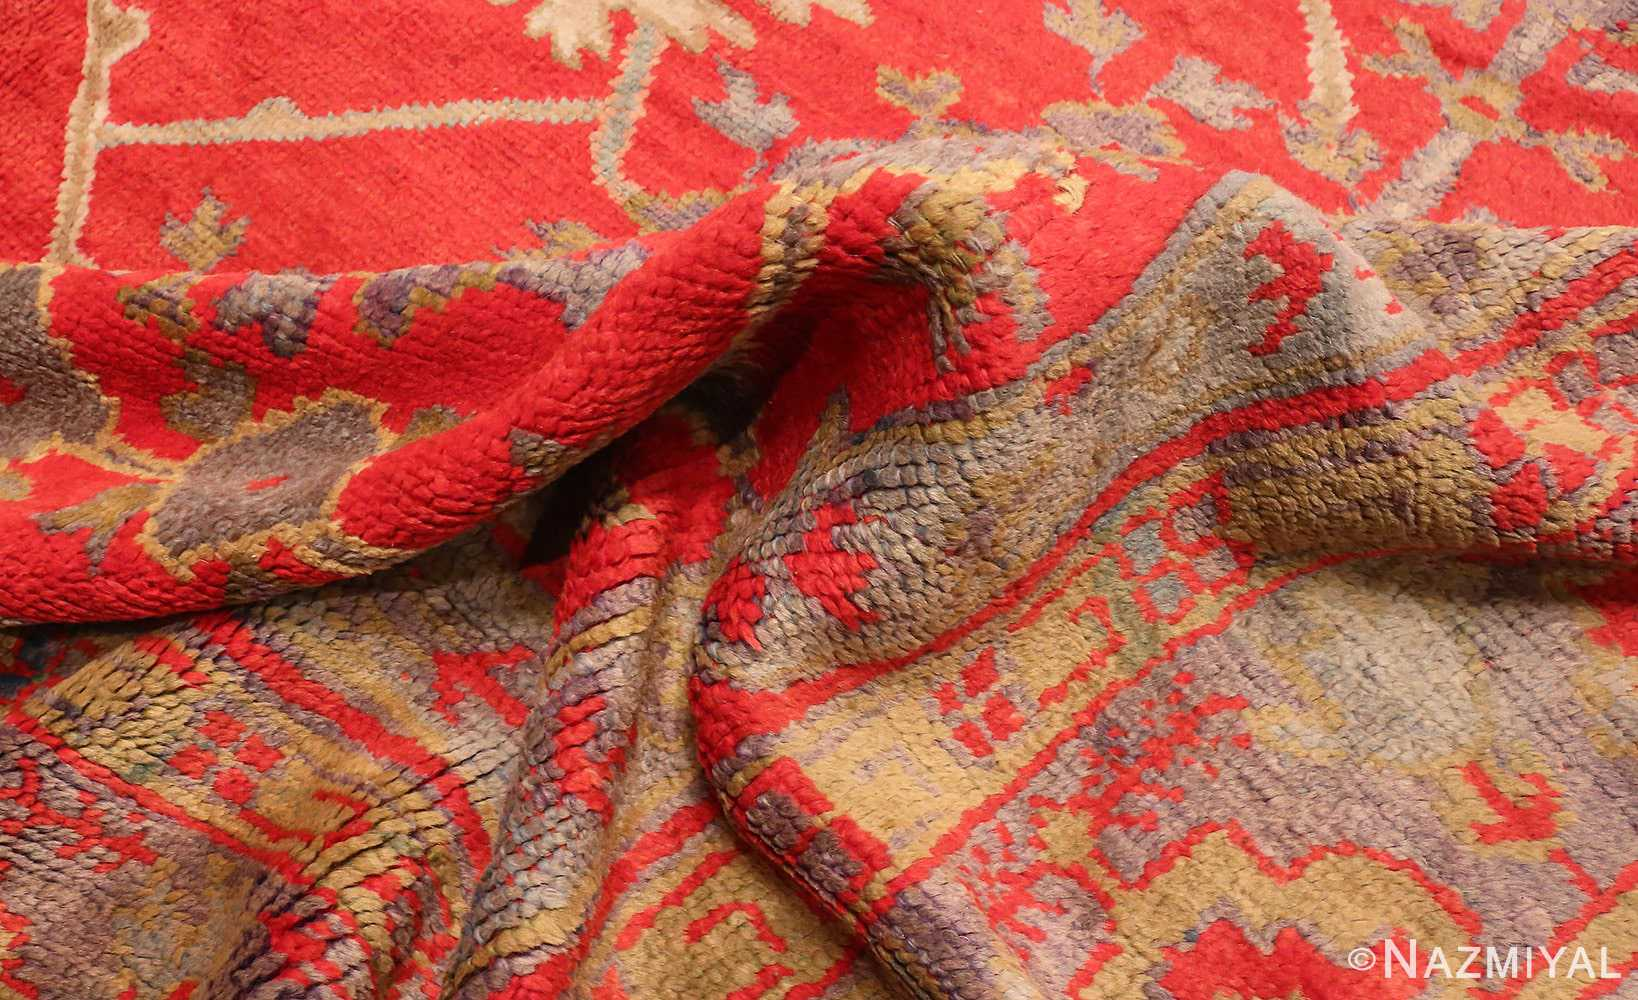 Picture of The Wool Pile Of The Large Red Antique Turkish Oushak Rug #70012 From Nazmiyal Antique Rugs in NYC